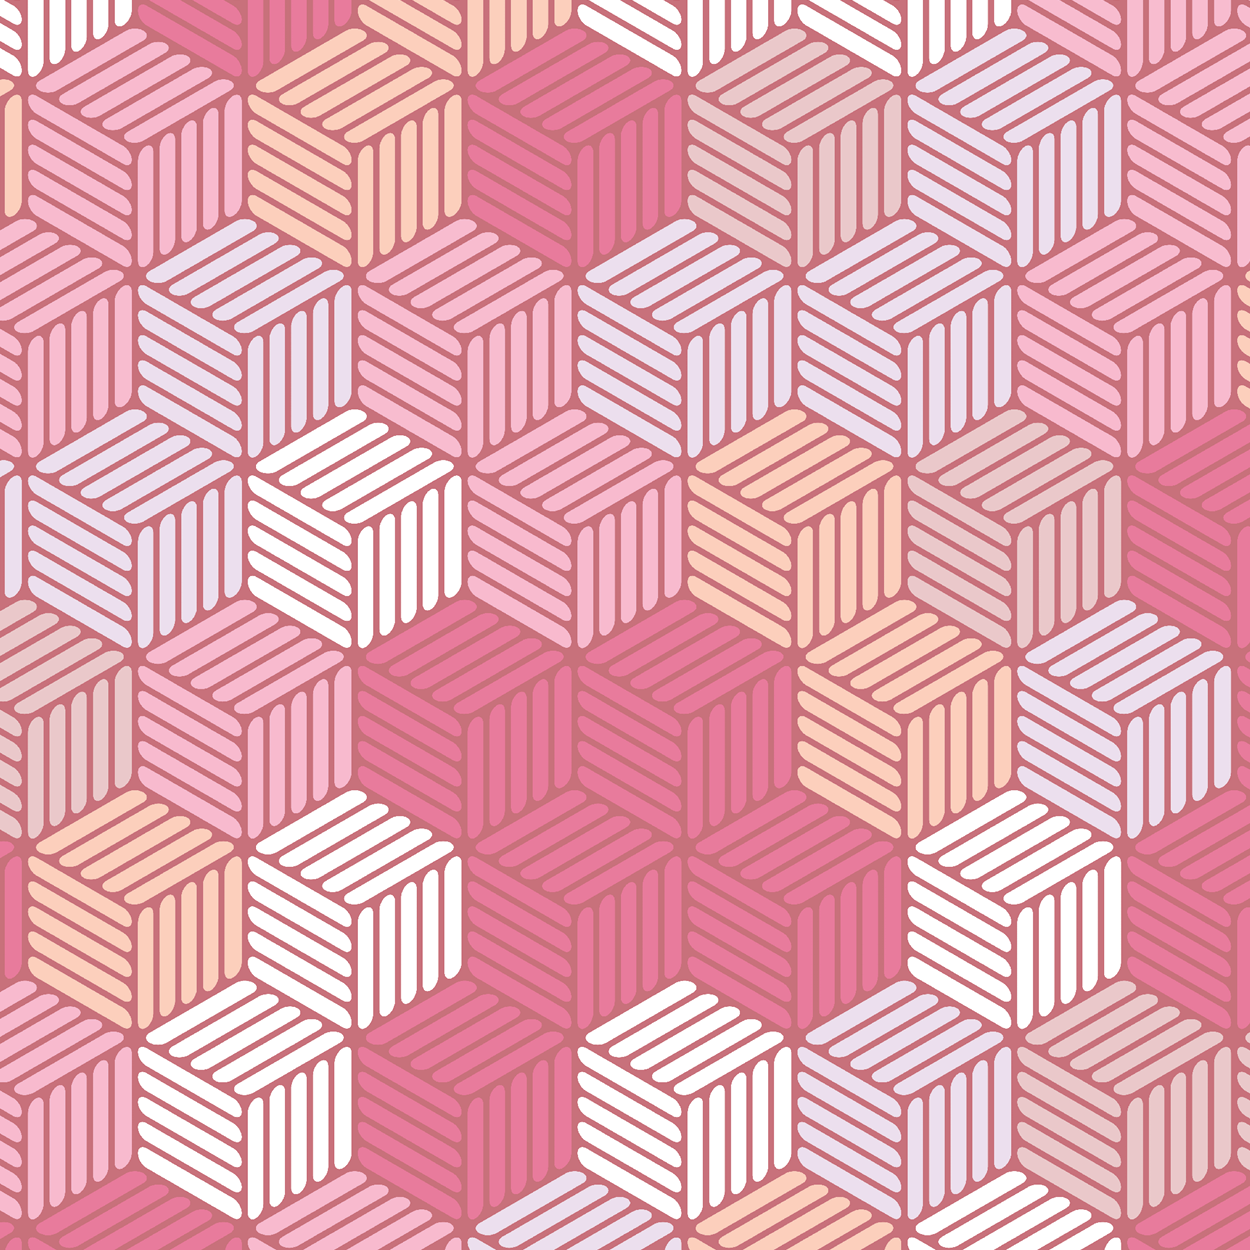 Isometric Hashed Cube 6